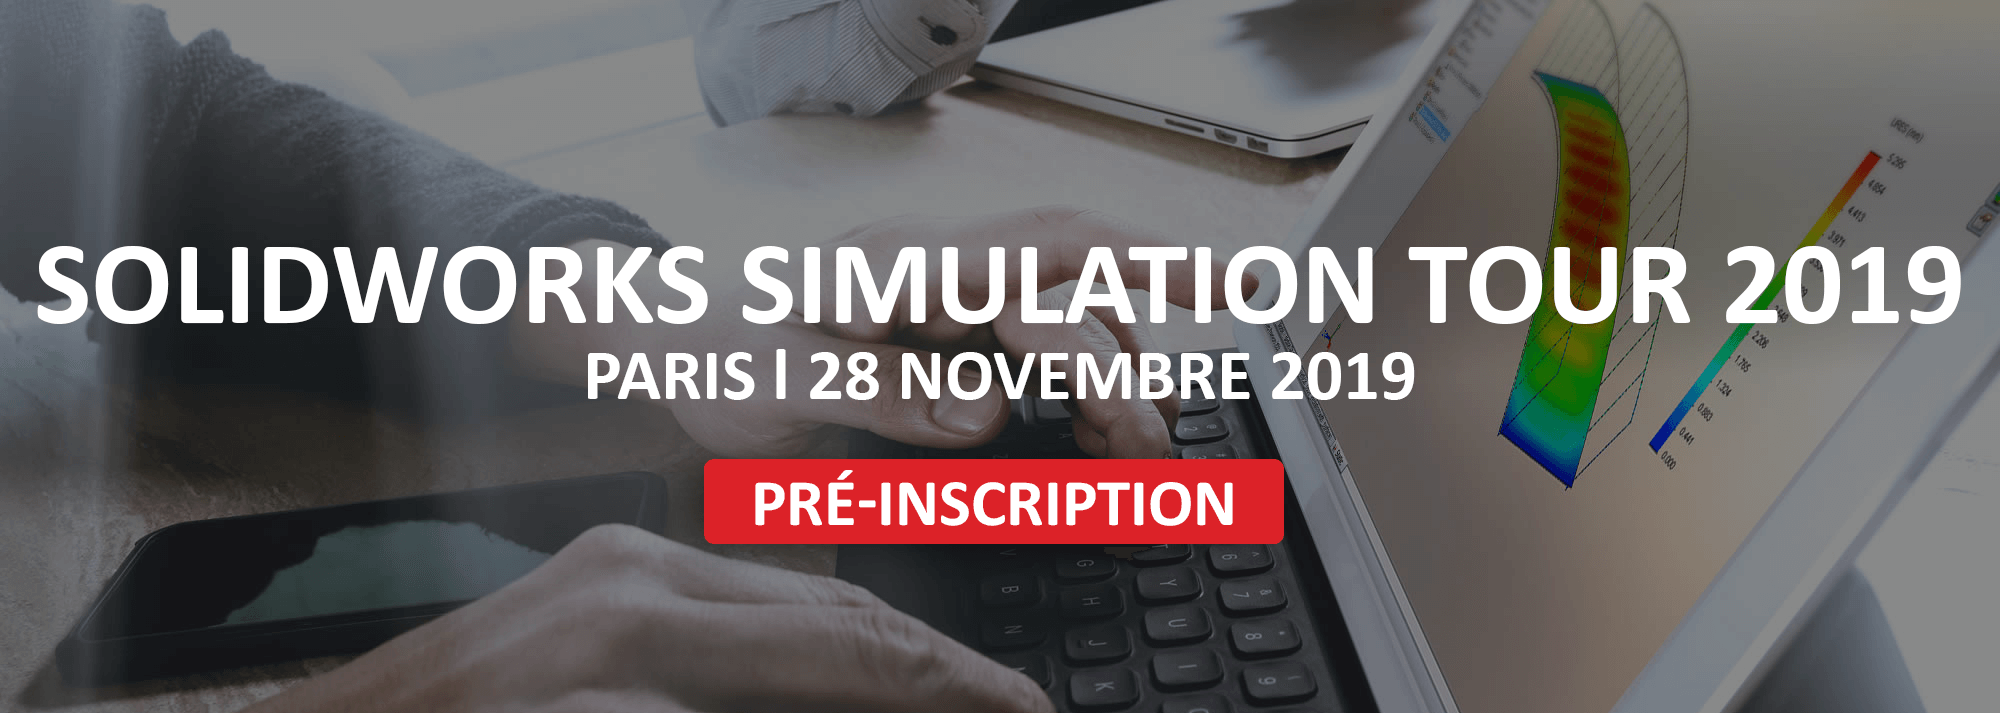 event solidworks simulation